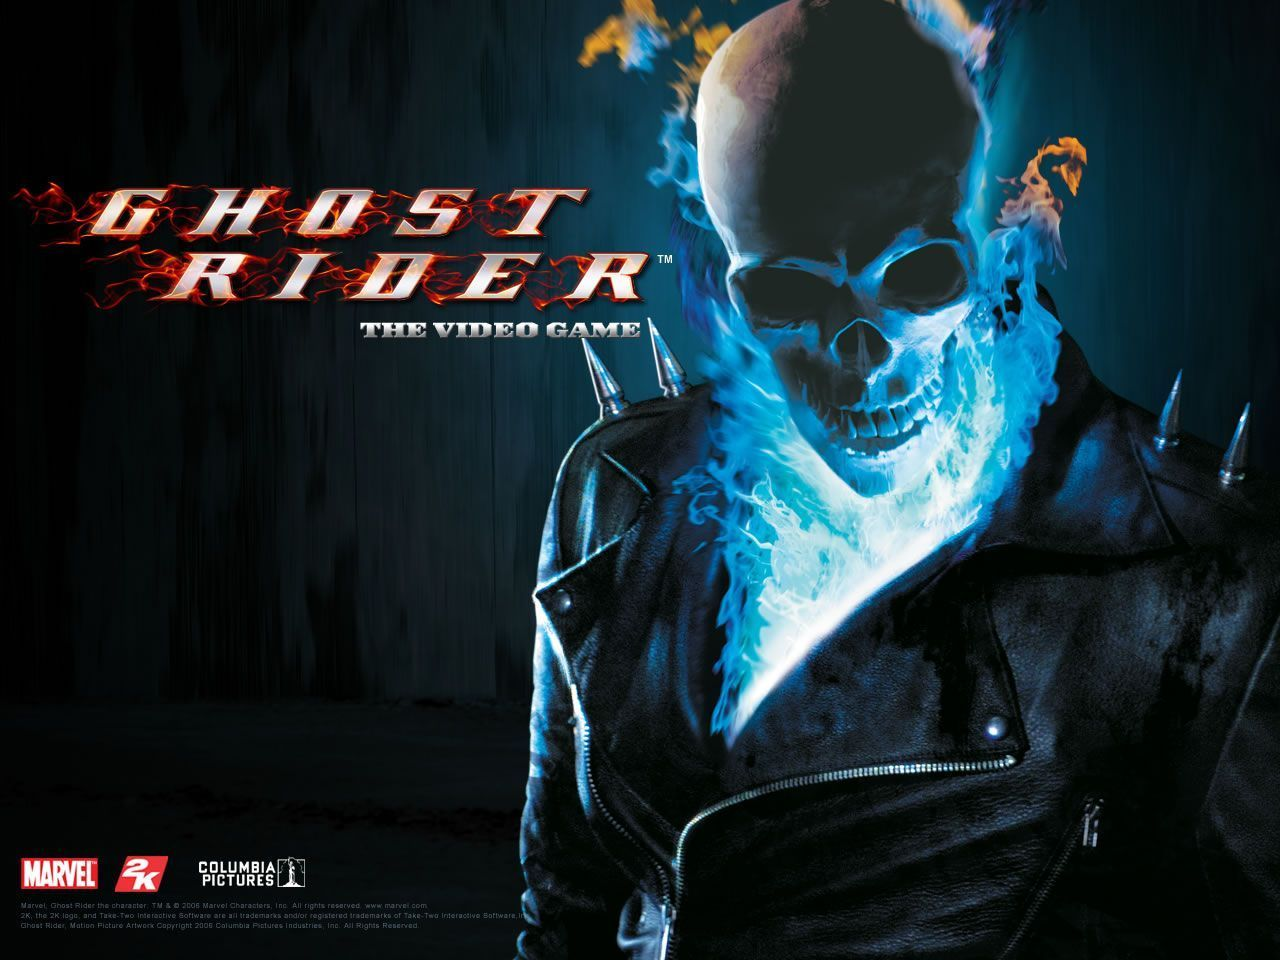 ghost rider spirit of vengeance hd desktop wallpaper : high 1280×800